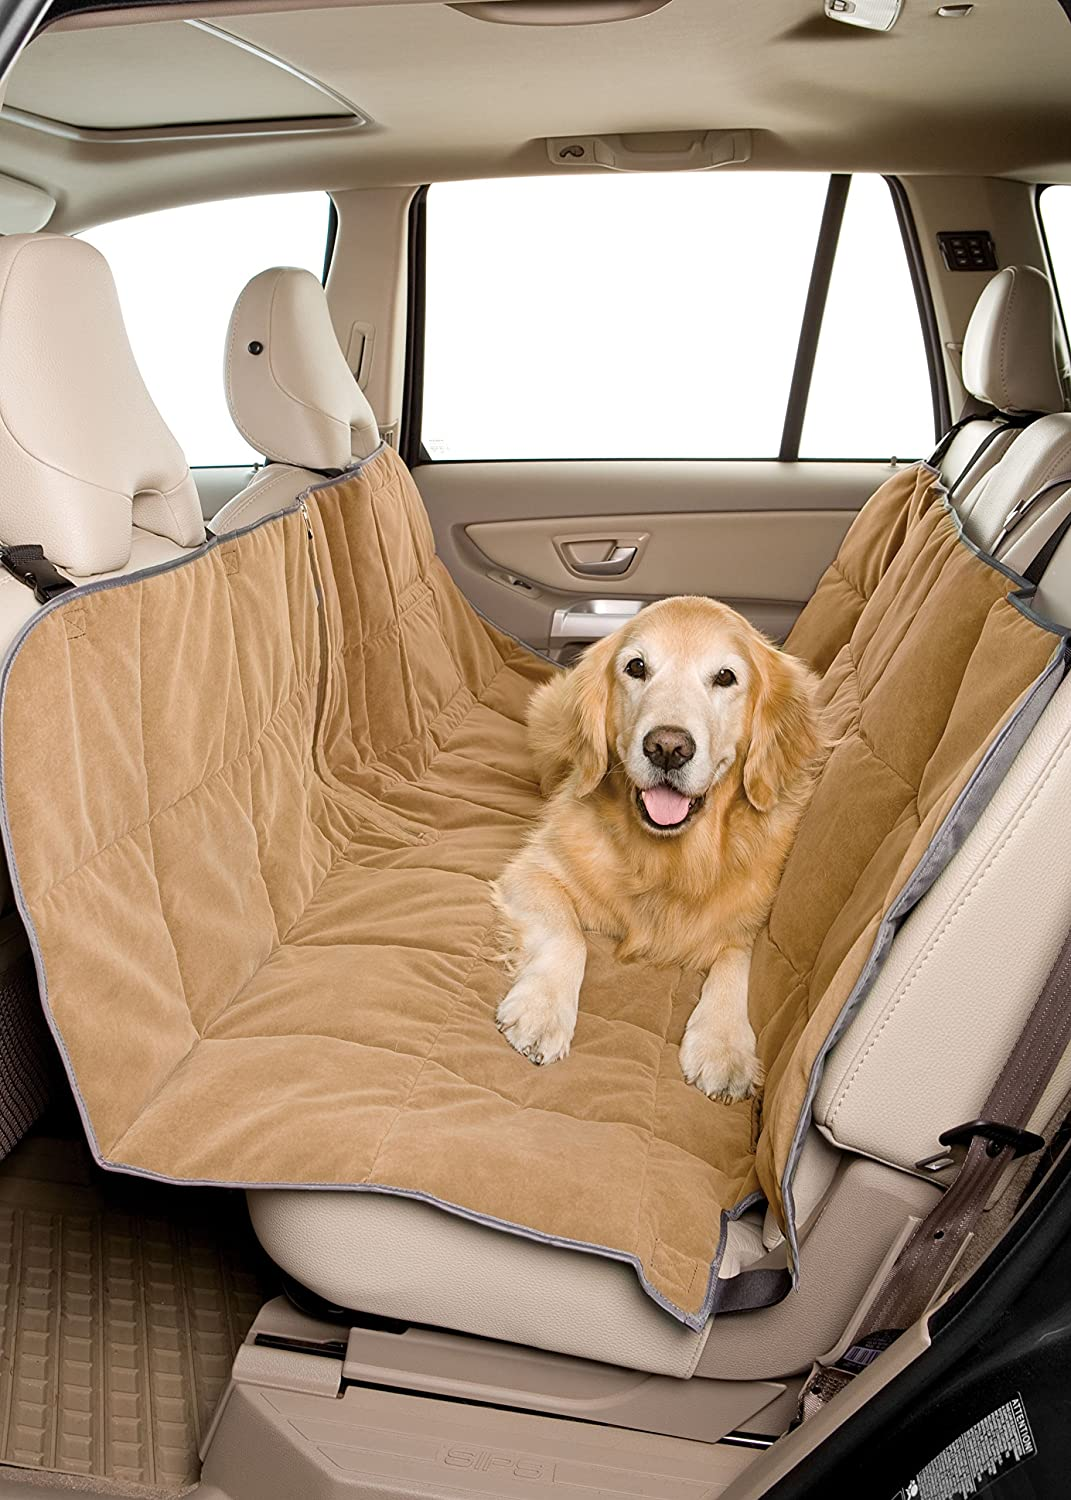 travel interior seat covers pet accessories safety item carriers cat waterproof hammock car from mat blanket in home cover dog